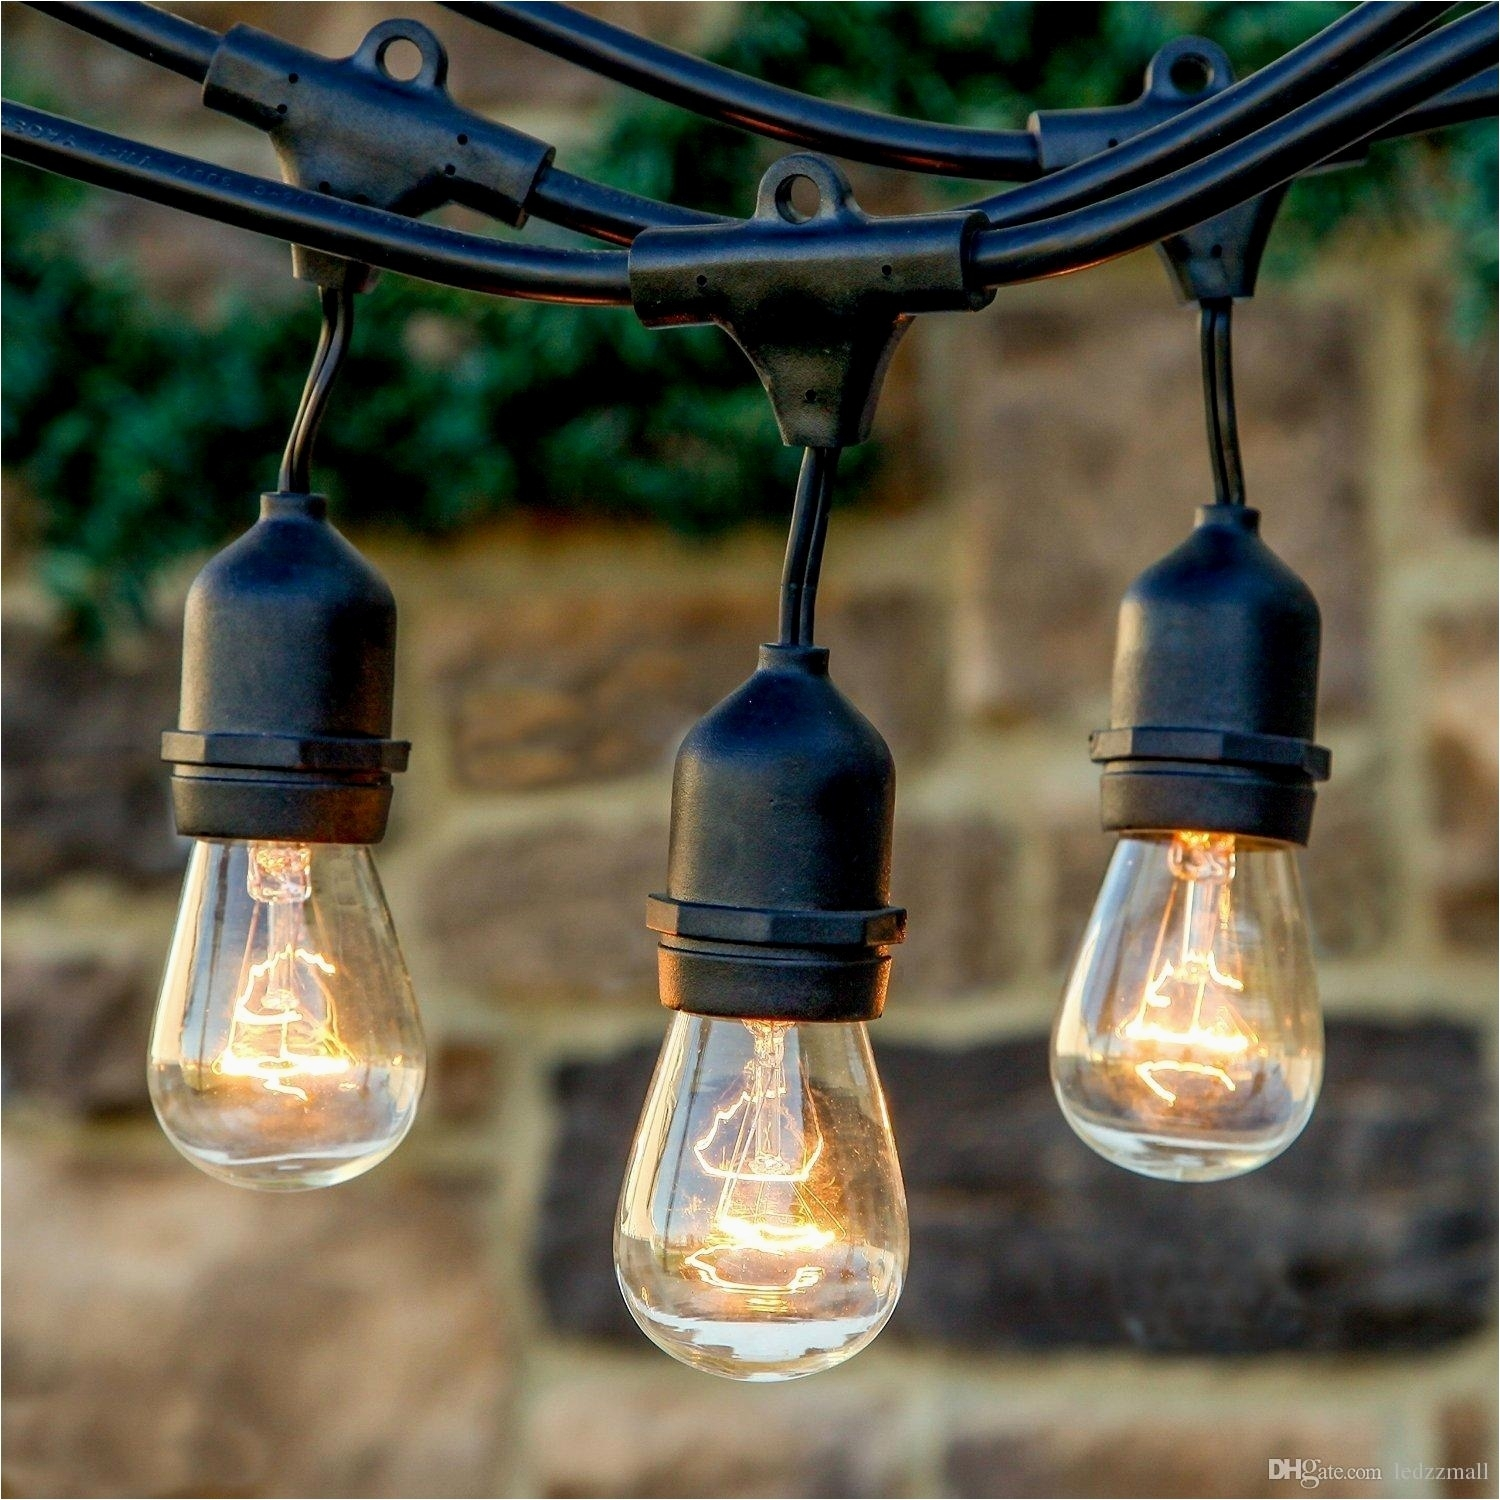 Outdoor Strand Lighting Ideas Outdoor String Lights With Hanging With Regard To Modern Outdoor String Lights (#10 of 15)